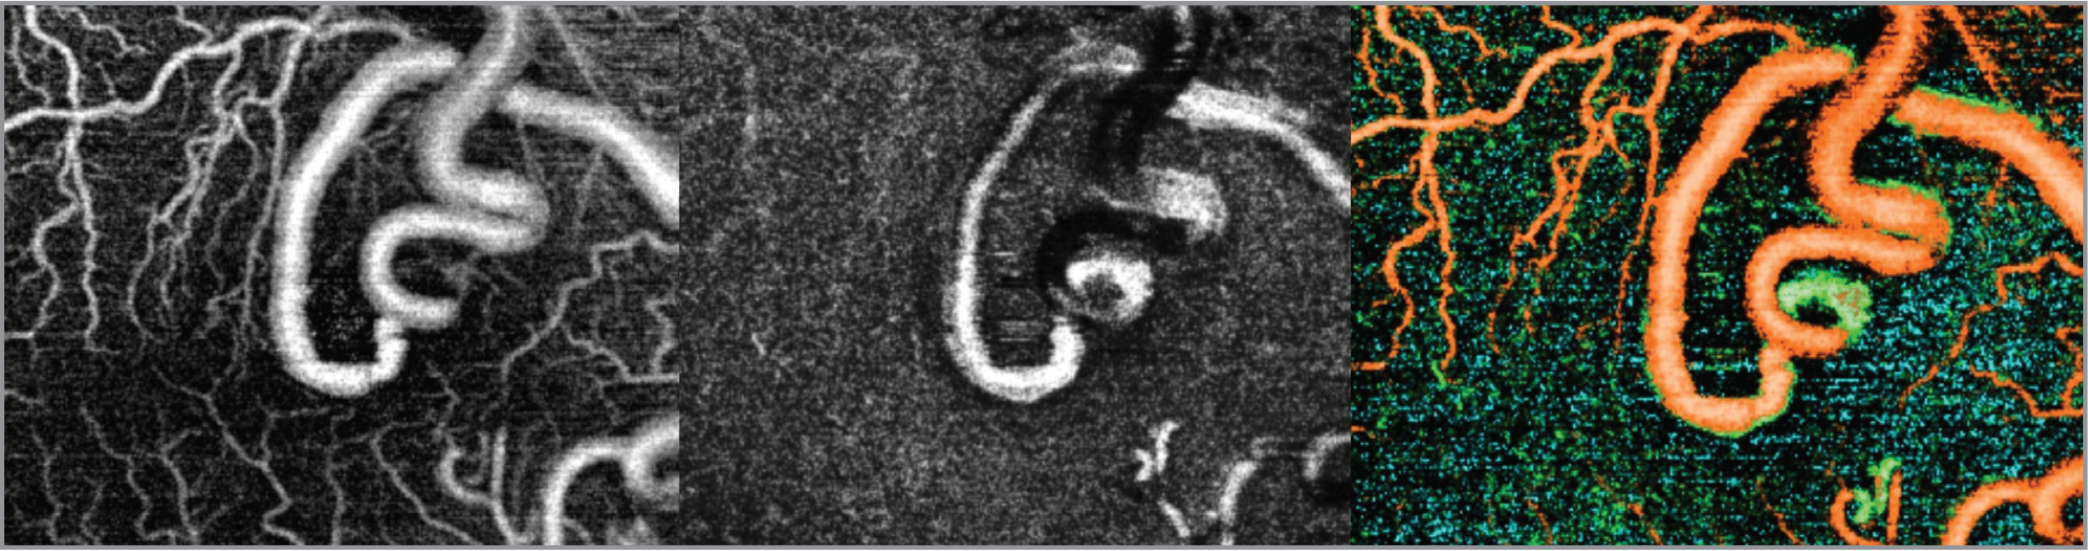 (Left) The anomalous vessels are seen on the superficial retinal vascular segment on optical coherence tomography angiography (OCTA). Foveal avascular zone is not well-defined. The adjacent normal superficial vessels appeared a bit displaced. Capillary nonperfusion areas are not seen. (Middle) The large anomalous arteriovenous malformation vessels are also visualized in deeper nonvascular segments of the outer retina on OCTA. (Right) Composite color-coded OCTA map of retinal vasculature showing the vasculature at various depths in different colors with orange representing most superficial plexus, green being at the level of the deep plexus and light blue at the level of the outer retina.